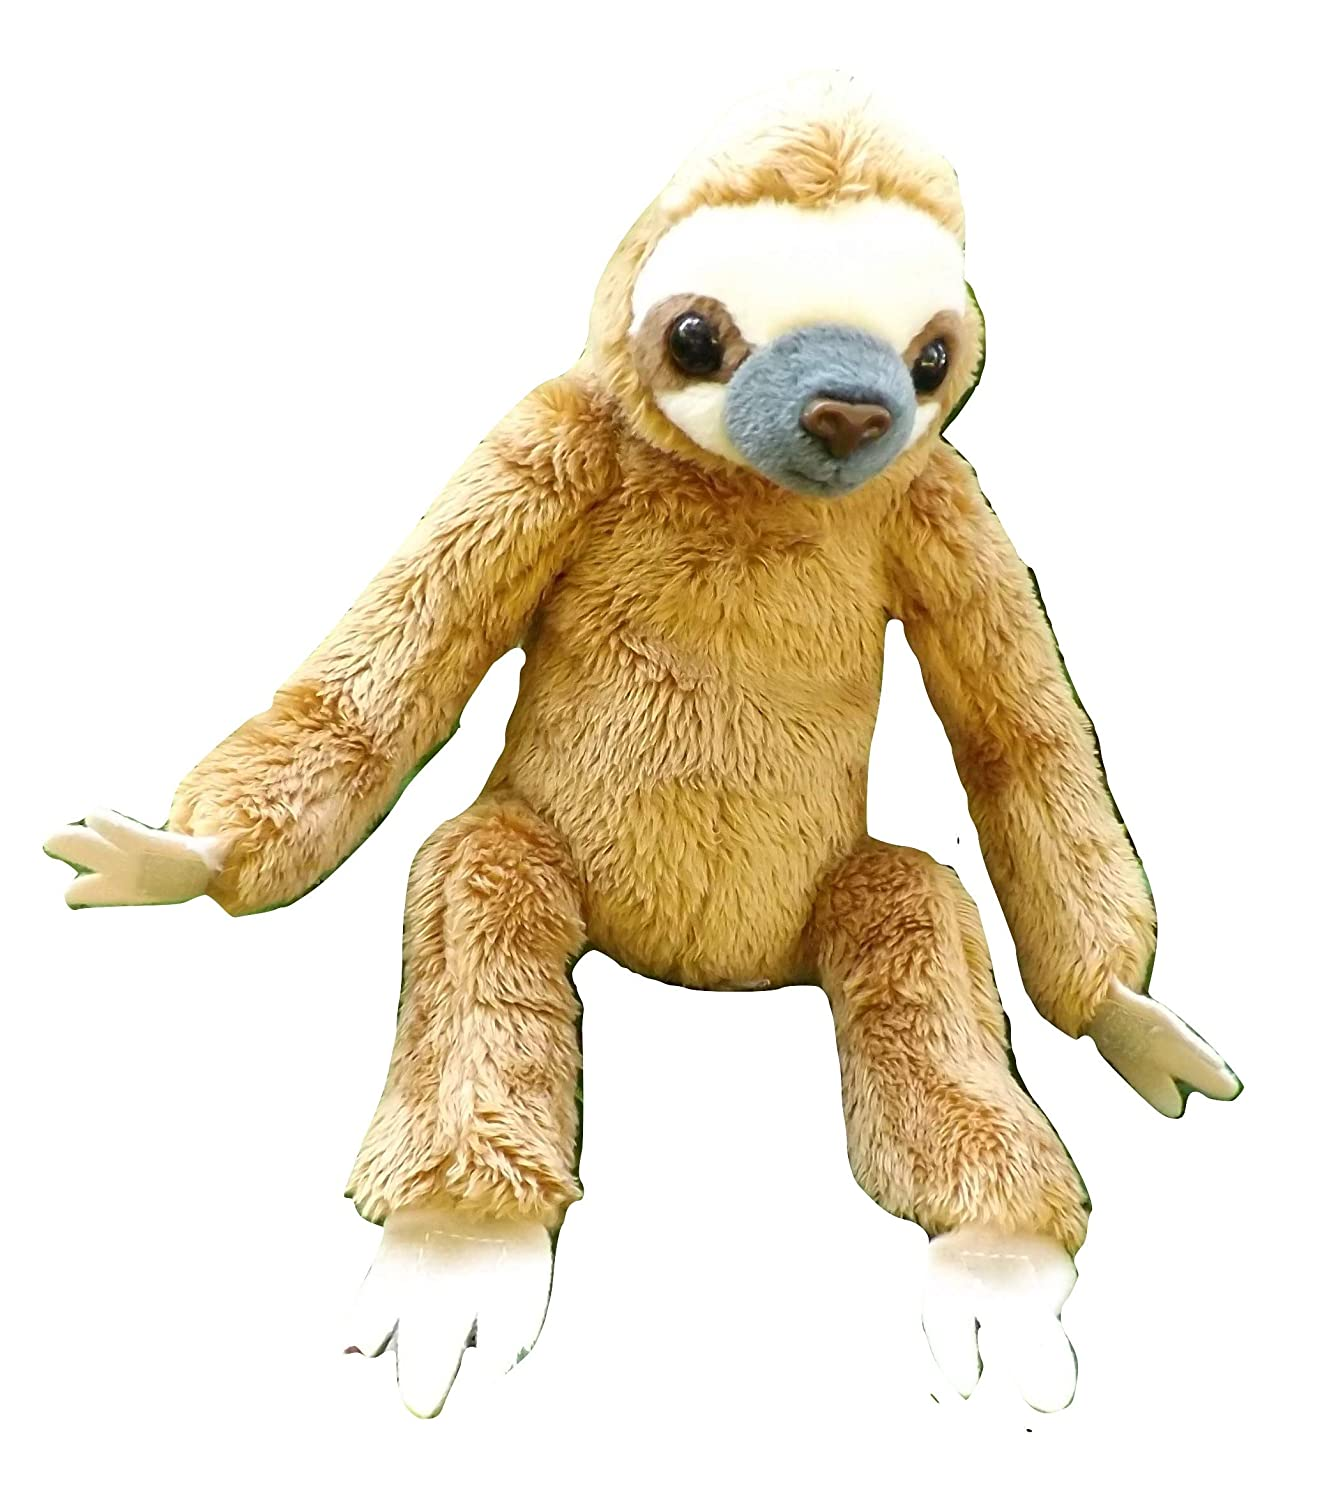 This Place is a Zoo Baby Sloth Plush Toy Animal 6.5 Cute Stuffed Baby Sloth